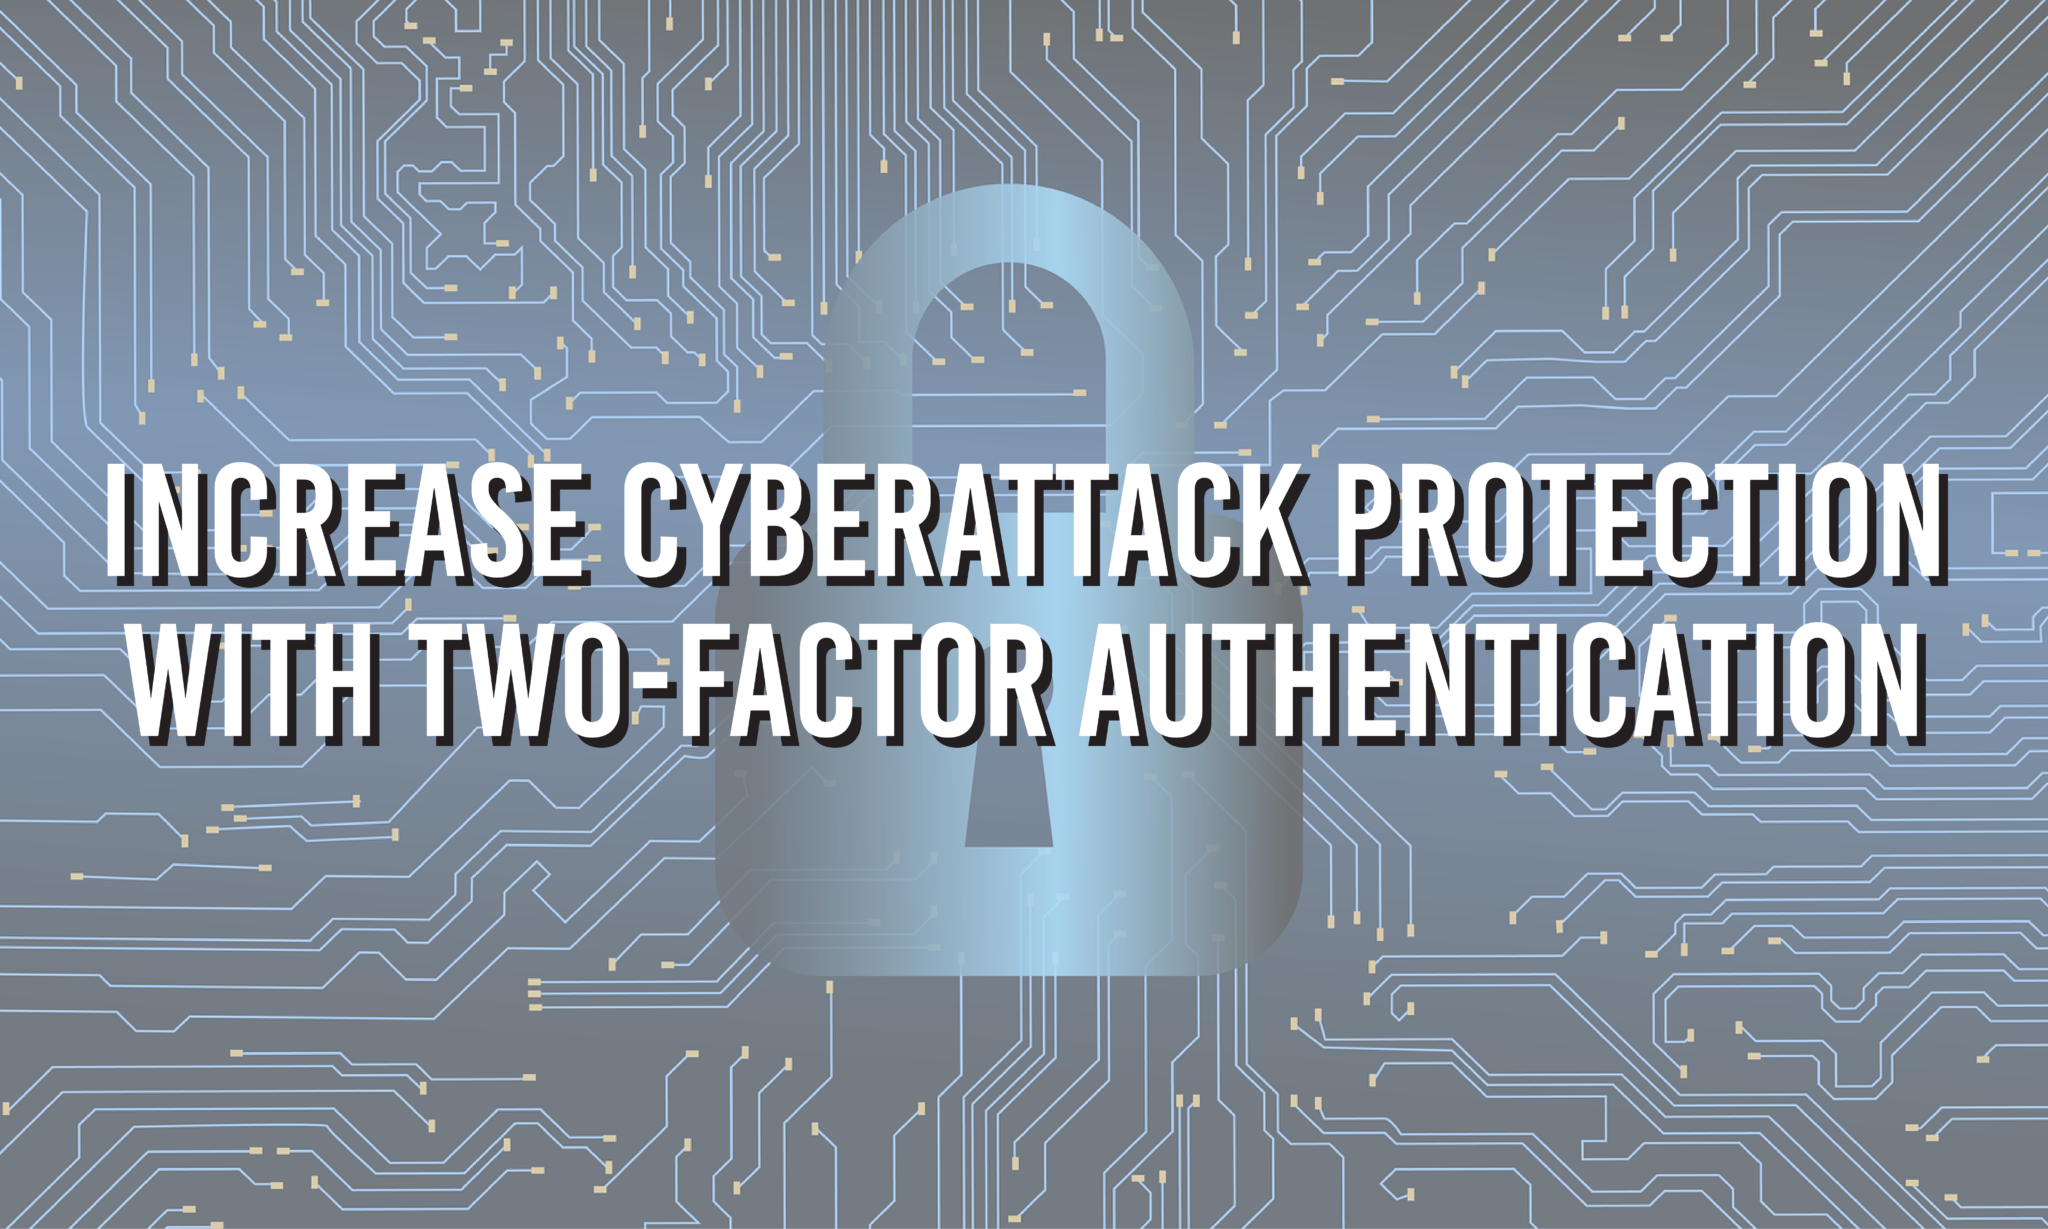 Increase Cyberattack Protection with Two-Factor Authentication